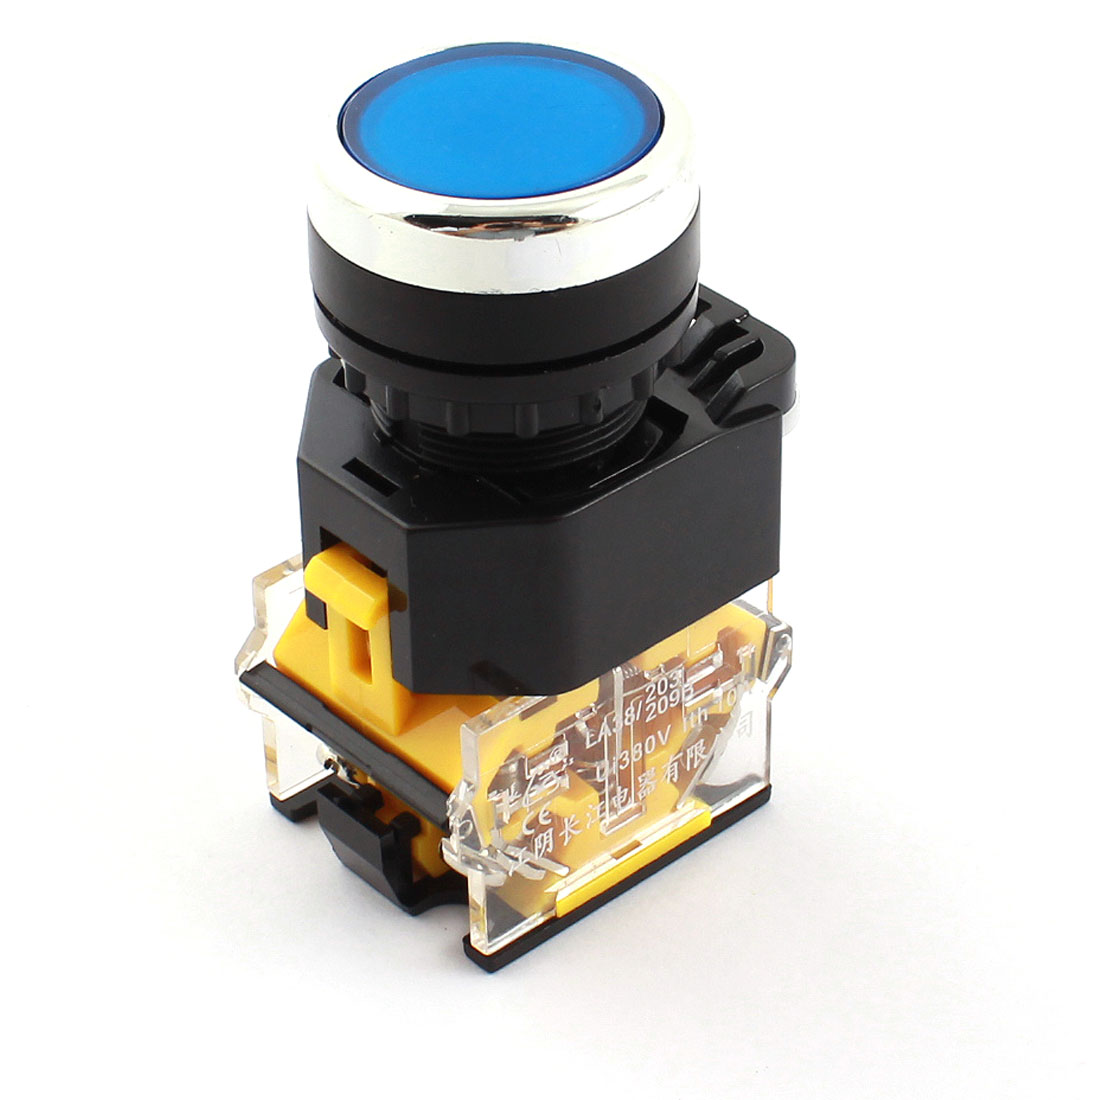 AC 380V 10A 22mm Dia Thread Panel Mount DPST 1NO 1NC 4 Screw Terminal Momentary Blue Push Button Switch